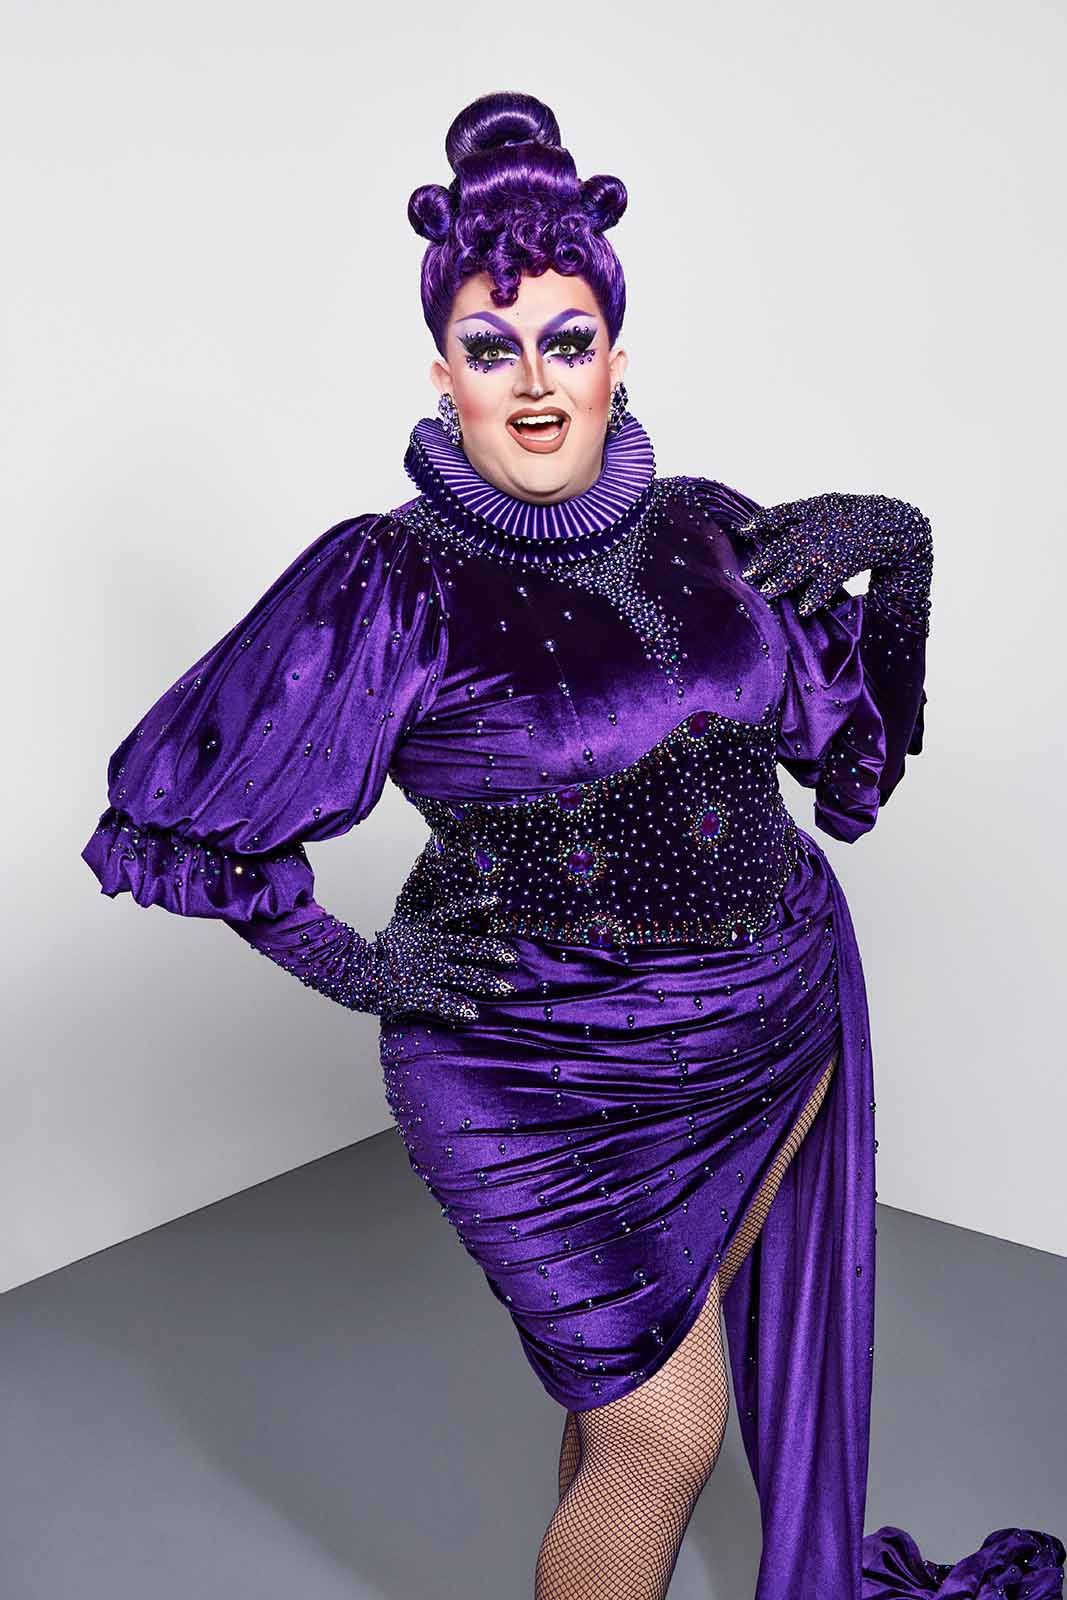 After a surprise double shantay, we now know our top four in 'Drag Race UK' season 2. But who is taking home the crown this year? See our predictions.